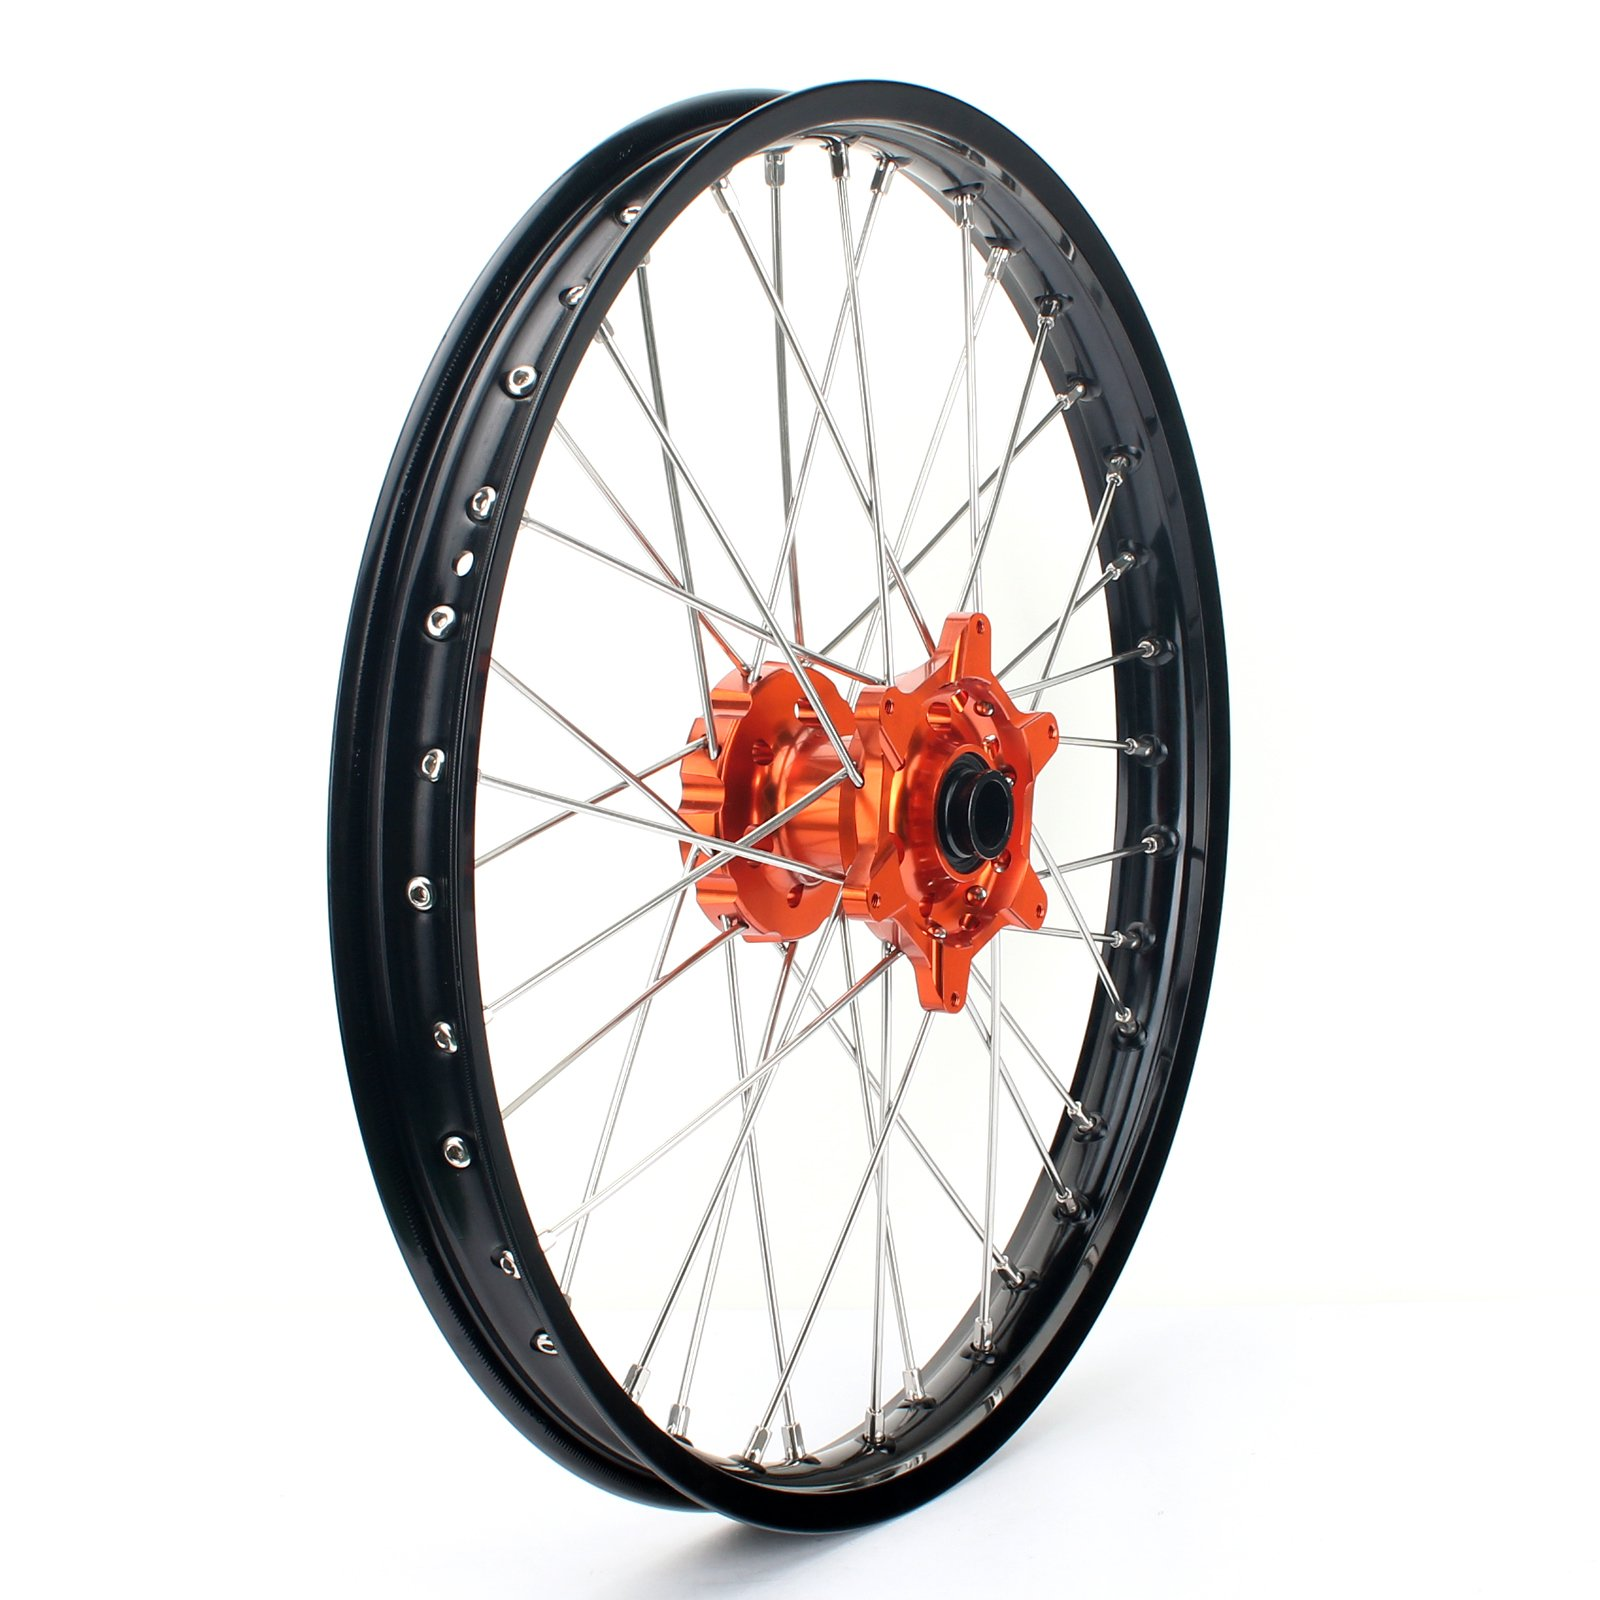 TARAZON 21'' MX Front Wheel Kit Rim Orange Hub Spokes for KTM SX 125 150 250 XC XC-F 250 XC EXC-F SX-F 300 350 450 2015 2016 With 22mm axle spacers